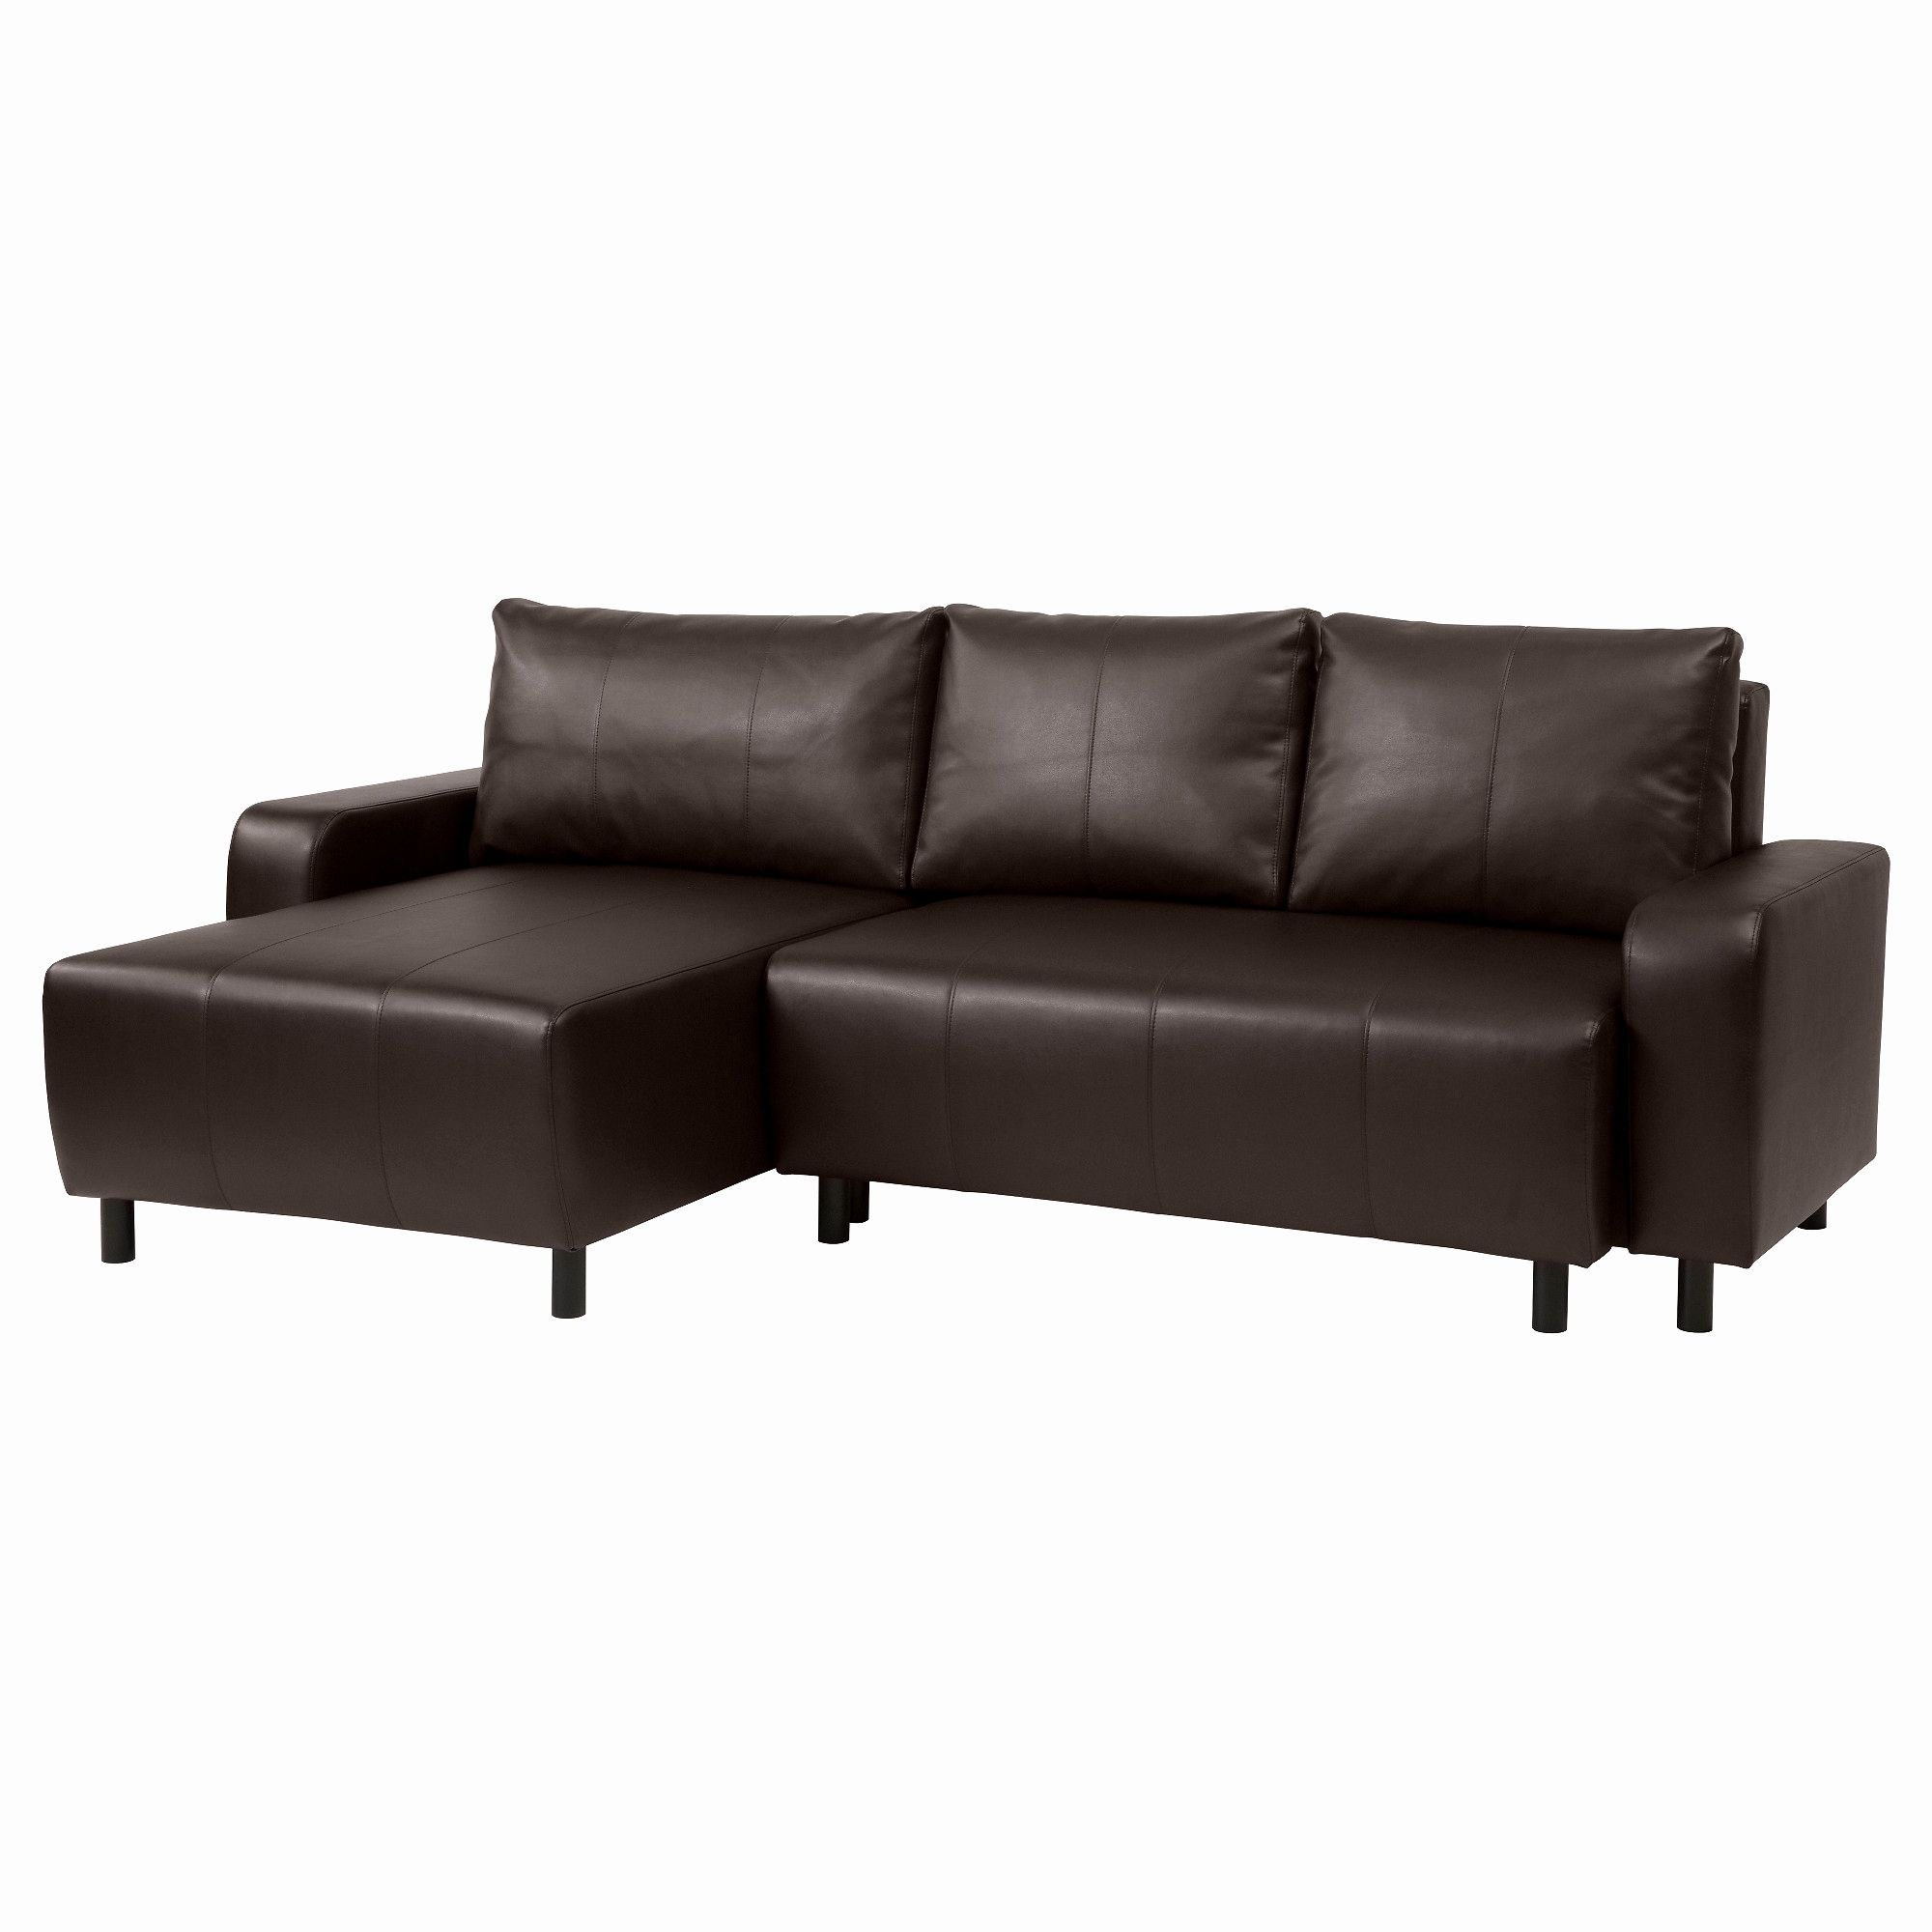 Lovely Sofa Sleeper Sectionals Pictures Beautiful Beds Futons Ikea